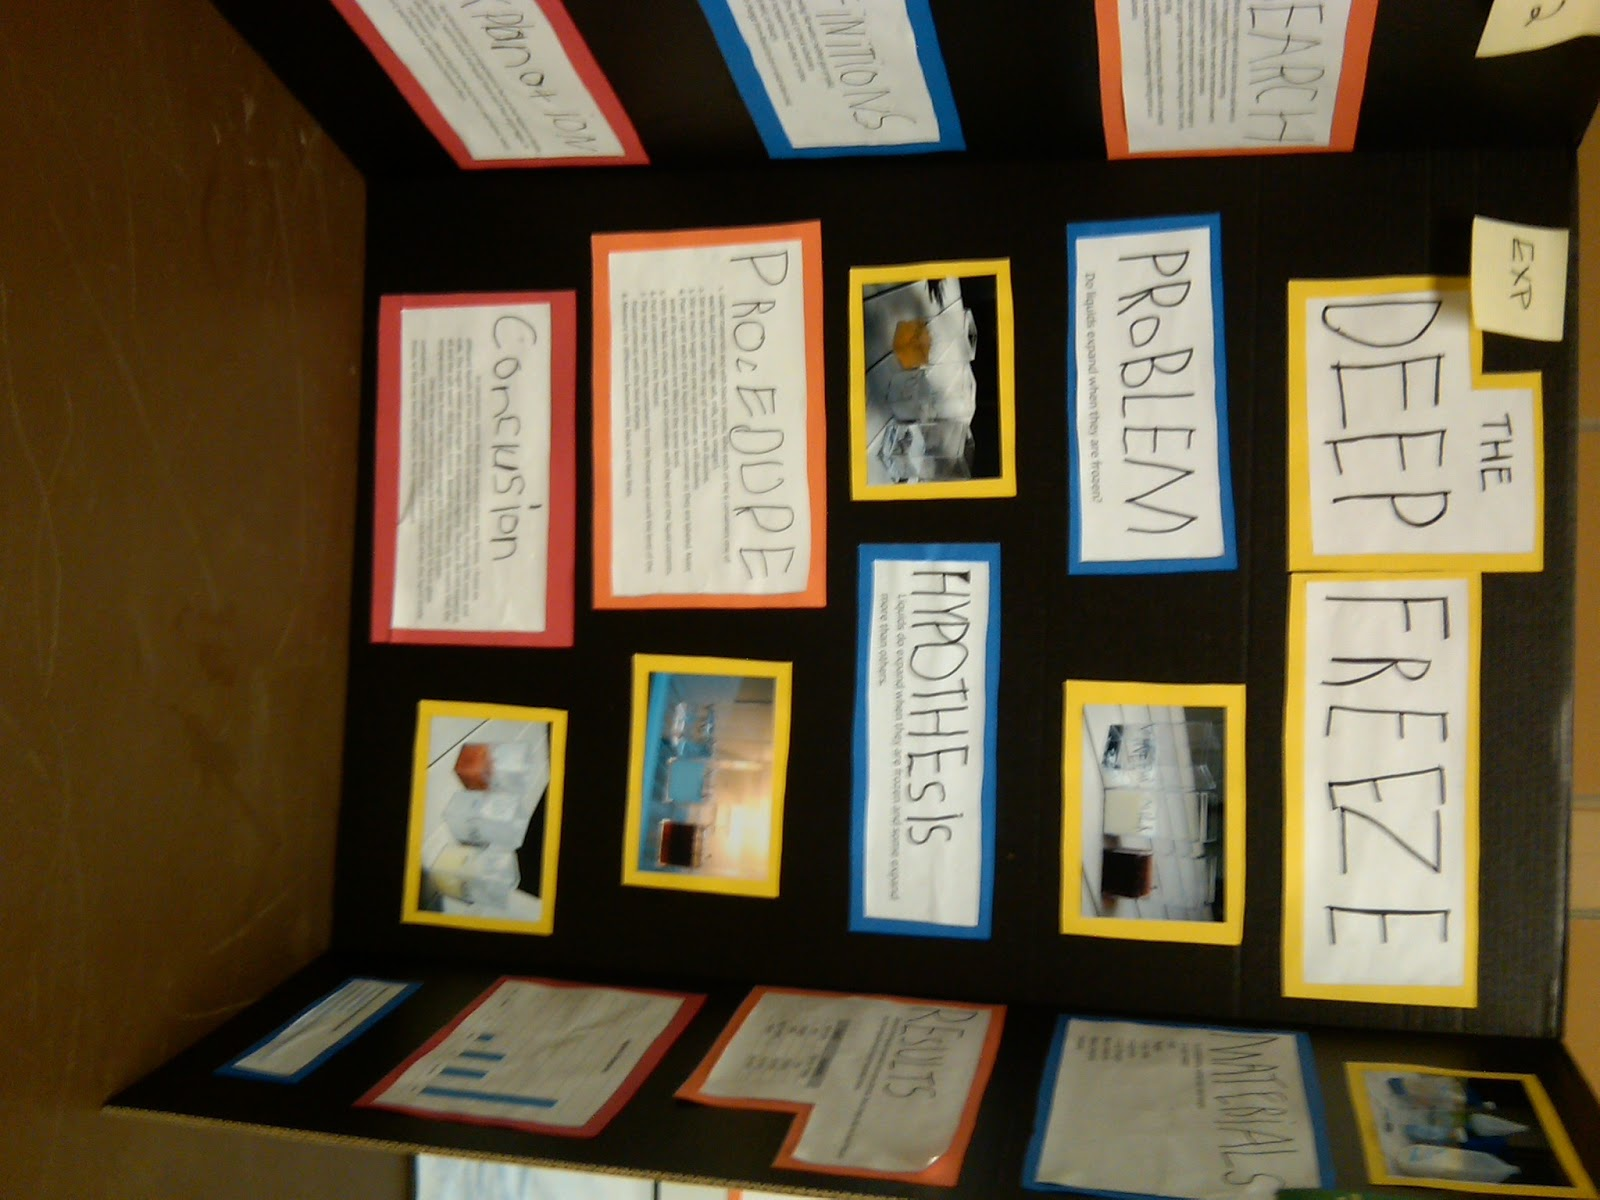 1600 x 1200 jpeg 215kB, Science Fair Projects For 5th Grade Girls A ...